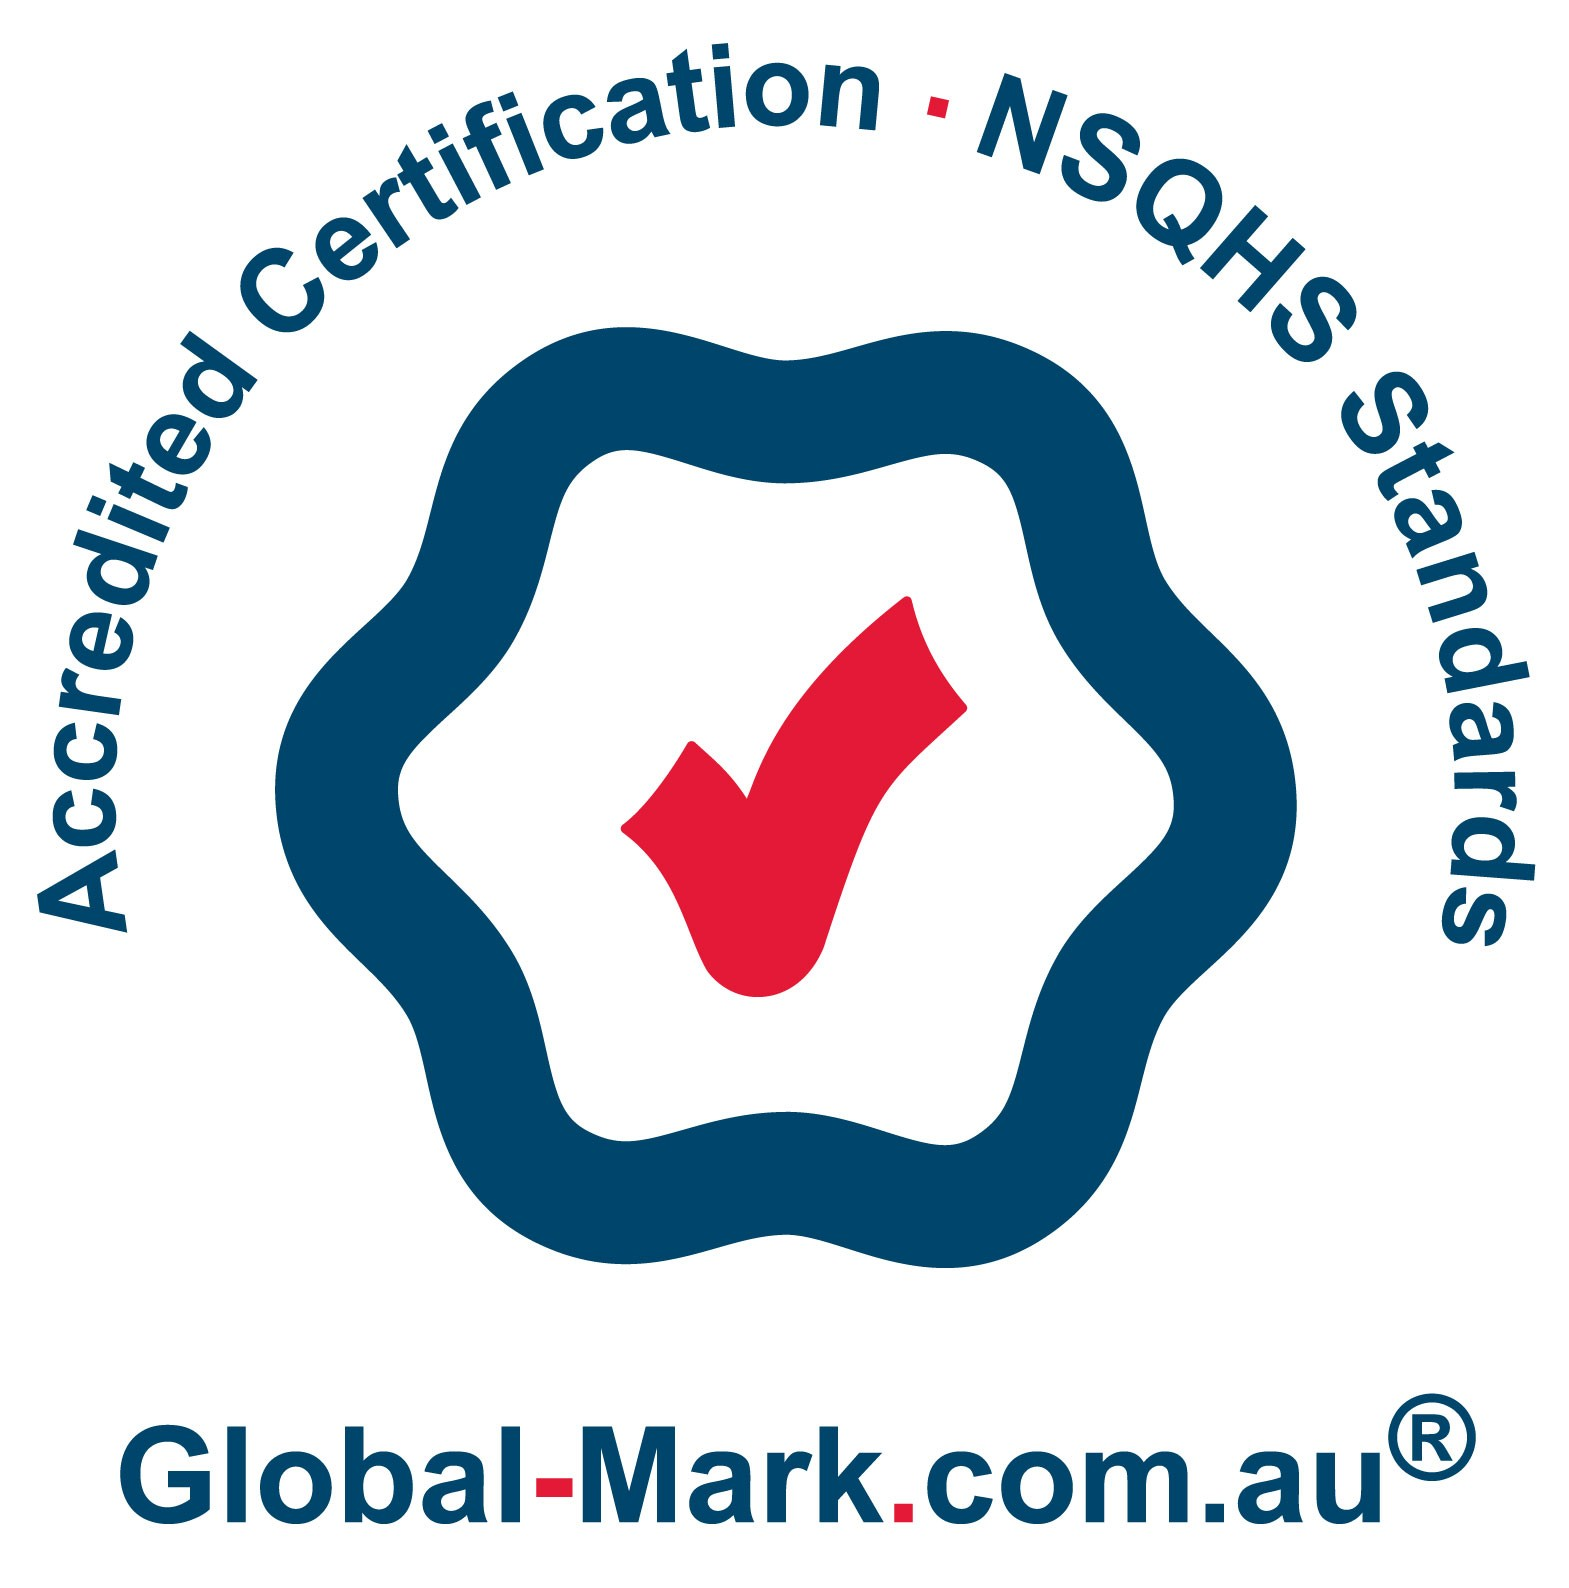 Accredited-Certification-Color